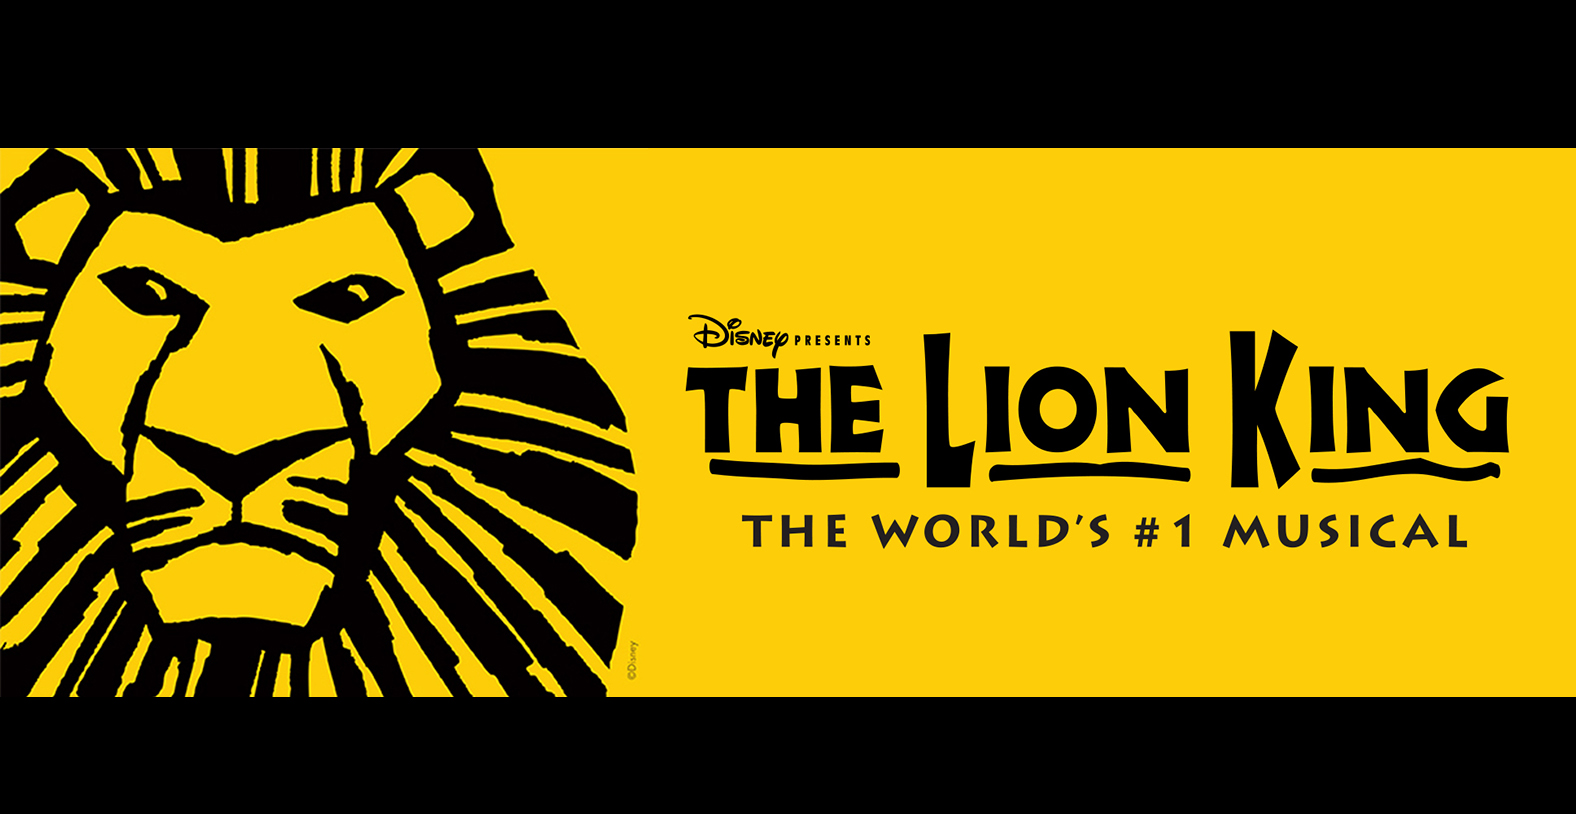 Disney's The Lion King Broadway at the Marcus Center in Milwaukee